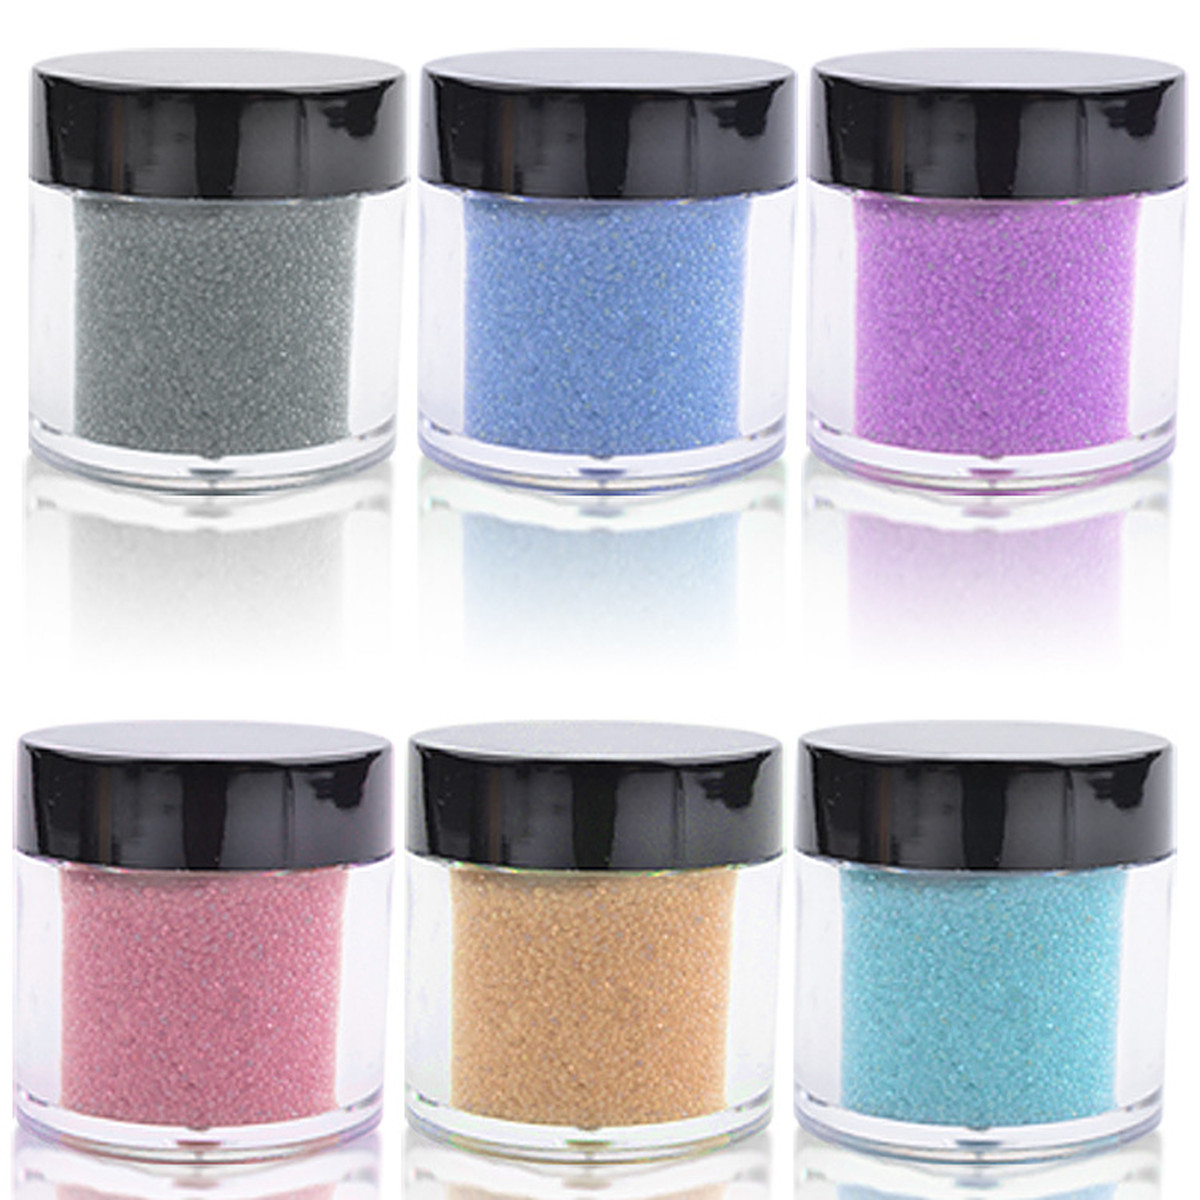 Micro beads for crafting - 6pc Glass Craft Nail Glass Bead Glitter Wine Shinny Iridescent Micro Beads Dots Pots Balls Nail Art Gels Nail Art Floristry Dust